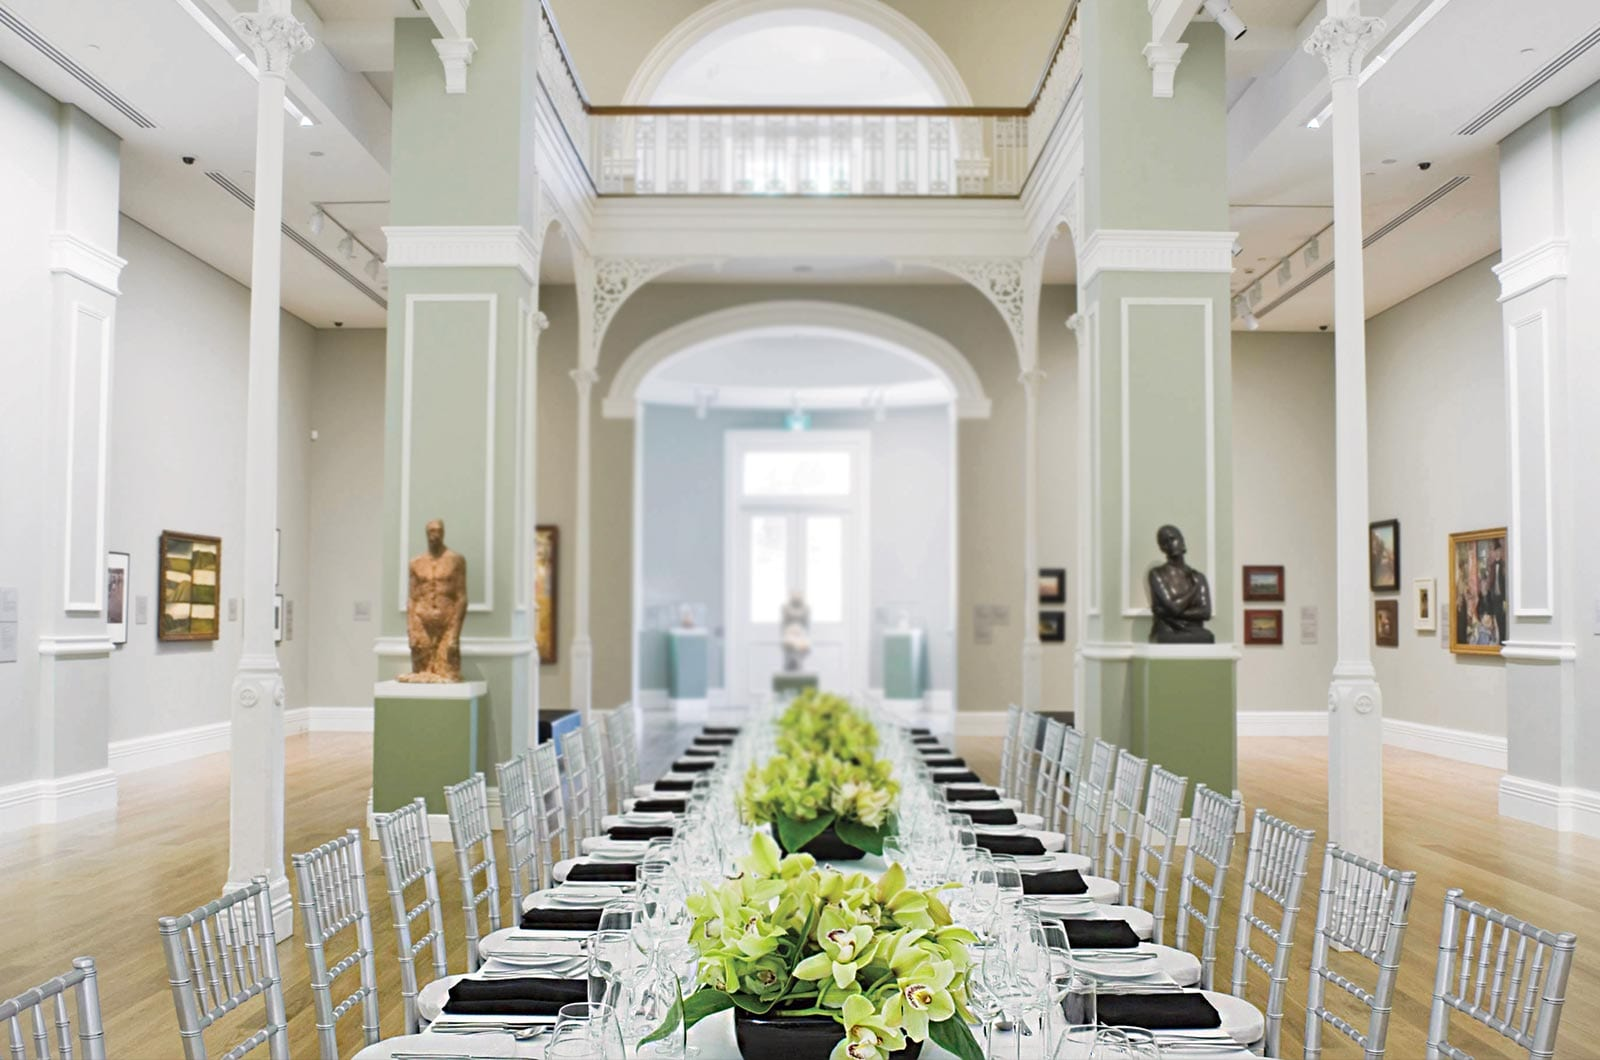 Event Space Photography Provider | Event Space Virtual Tours | Event Space Virtual Tour Photography